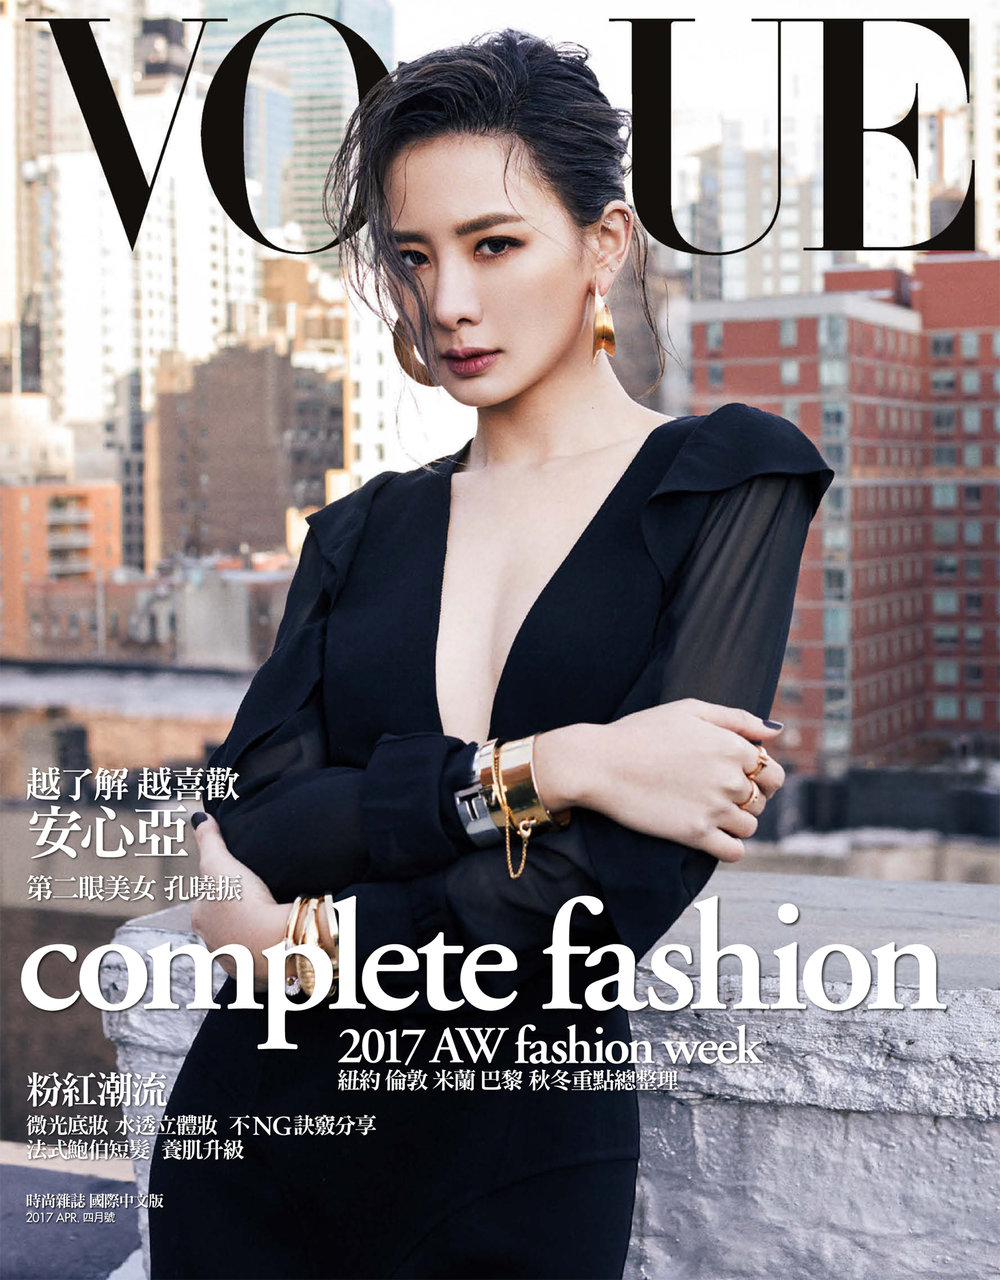 Vogue_Taiwan_Issue_247_April_2017-1.jpg